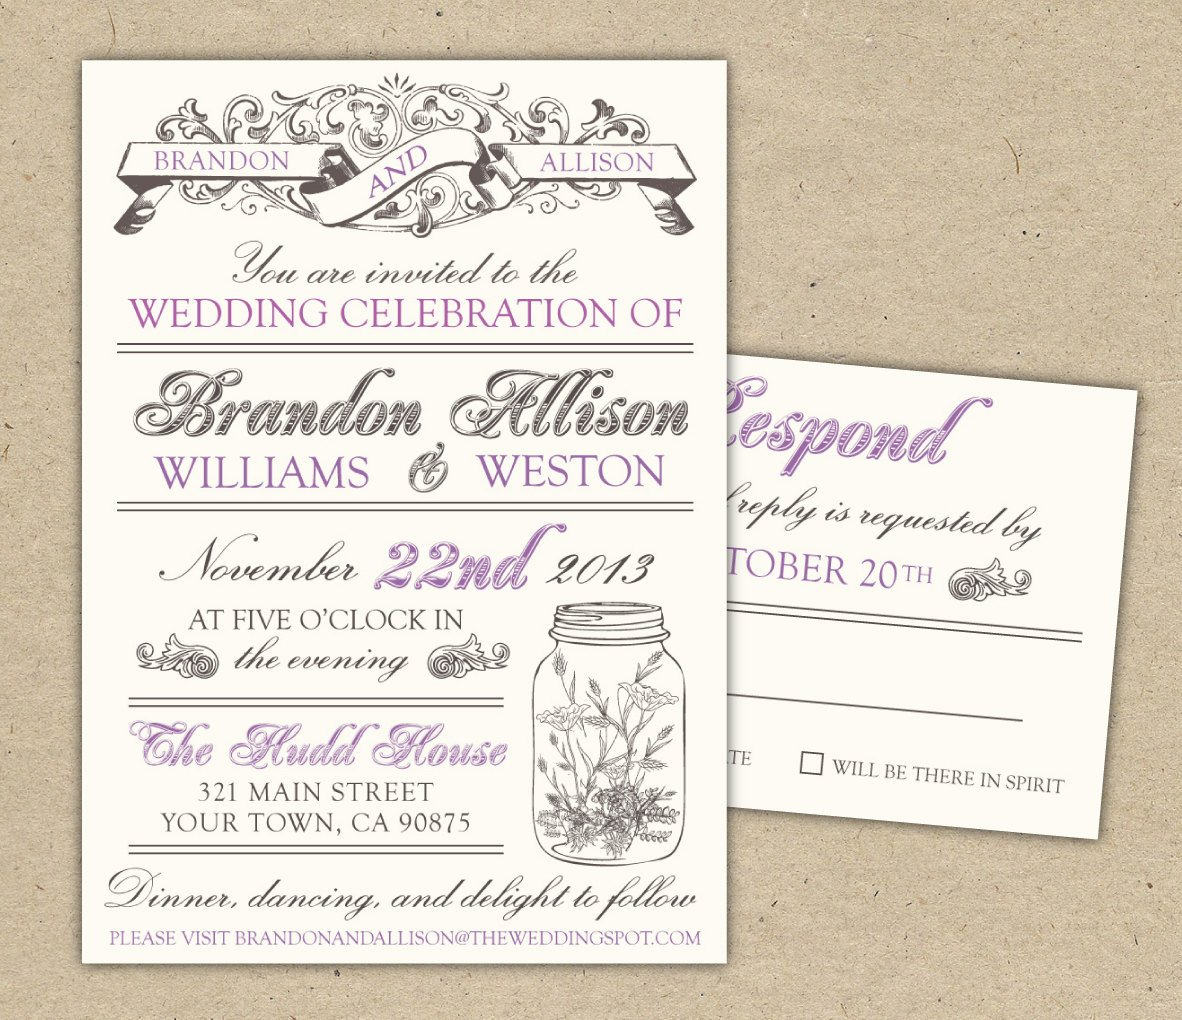 Free Wedding Invitation Template 30 Unique Vintage Wedding Invitations